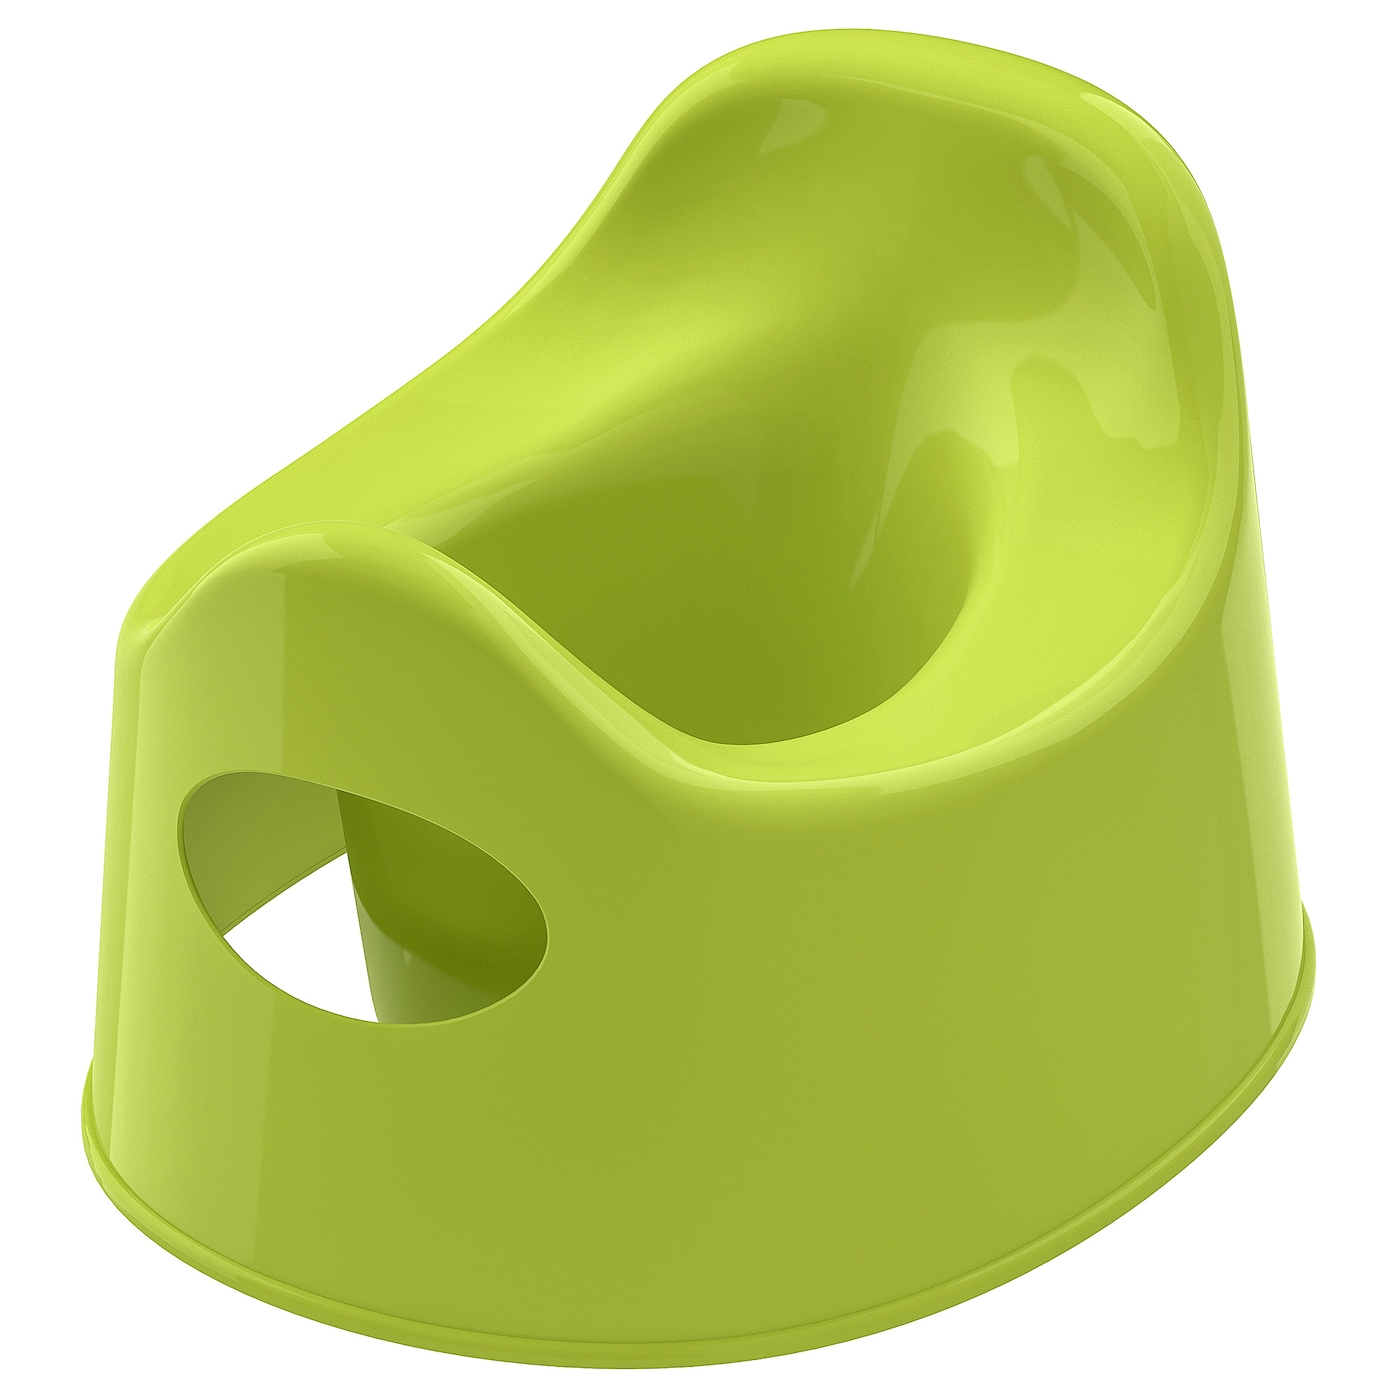 IKEA LILLA children's potty Easy to empty and clean.